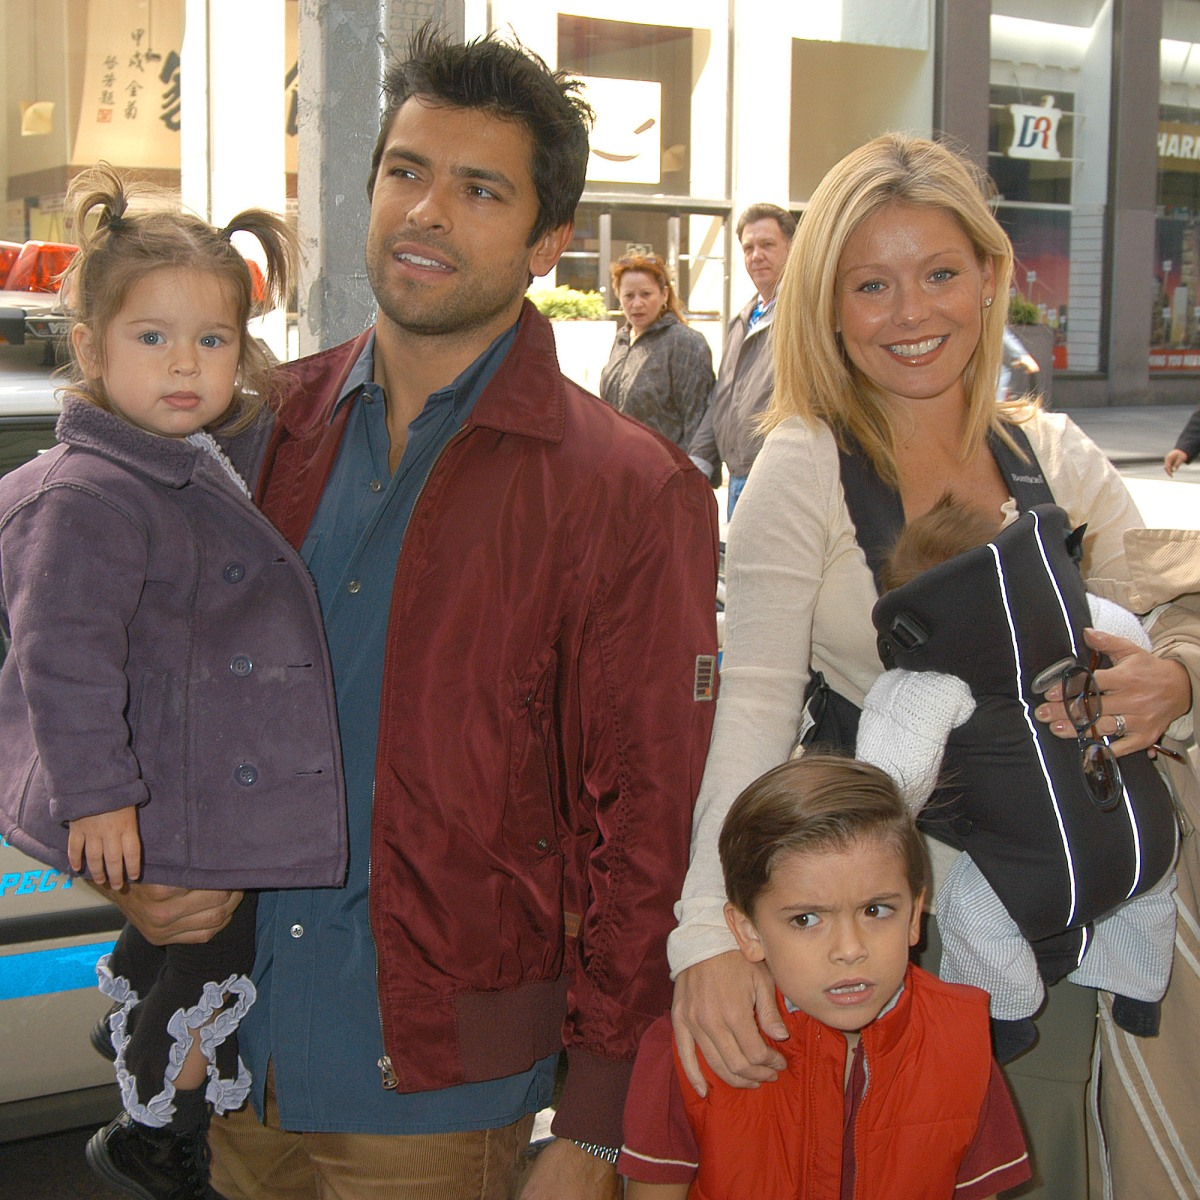 Where Does Kelly Ripa's Son Go to College? Find out Here!